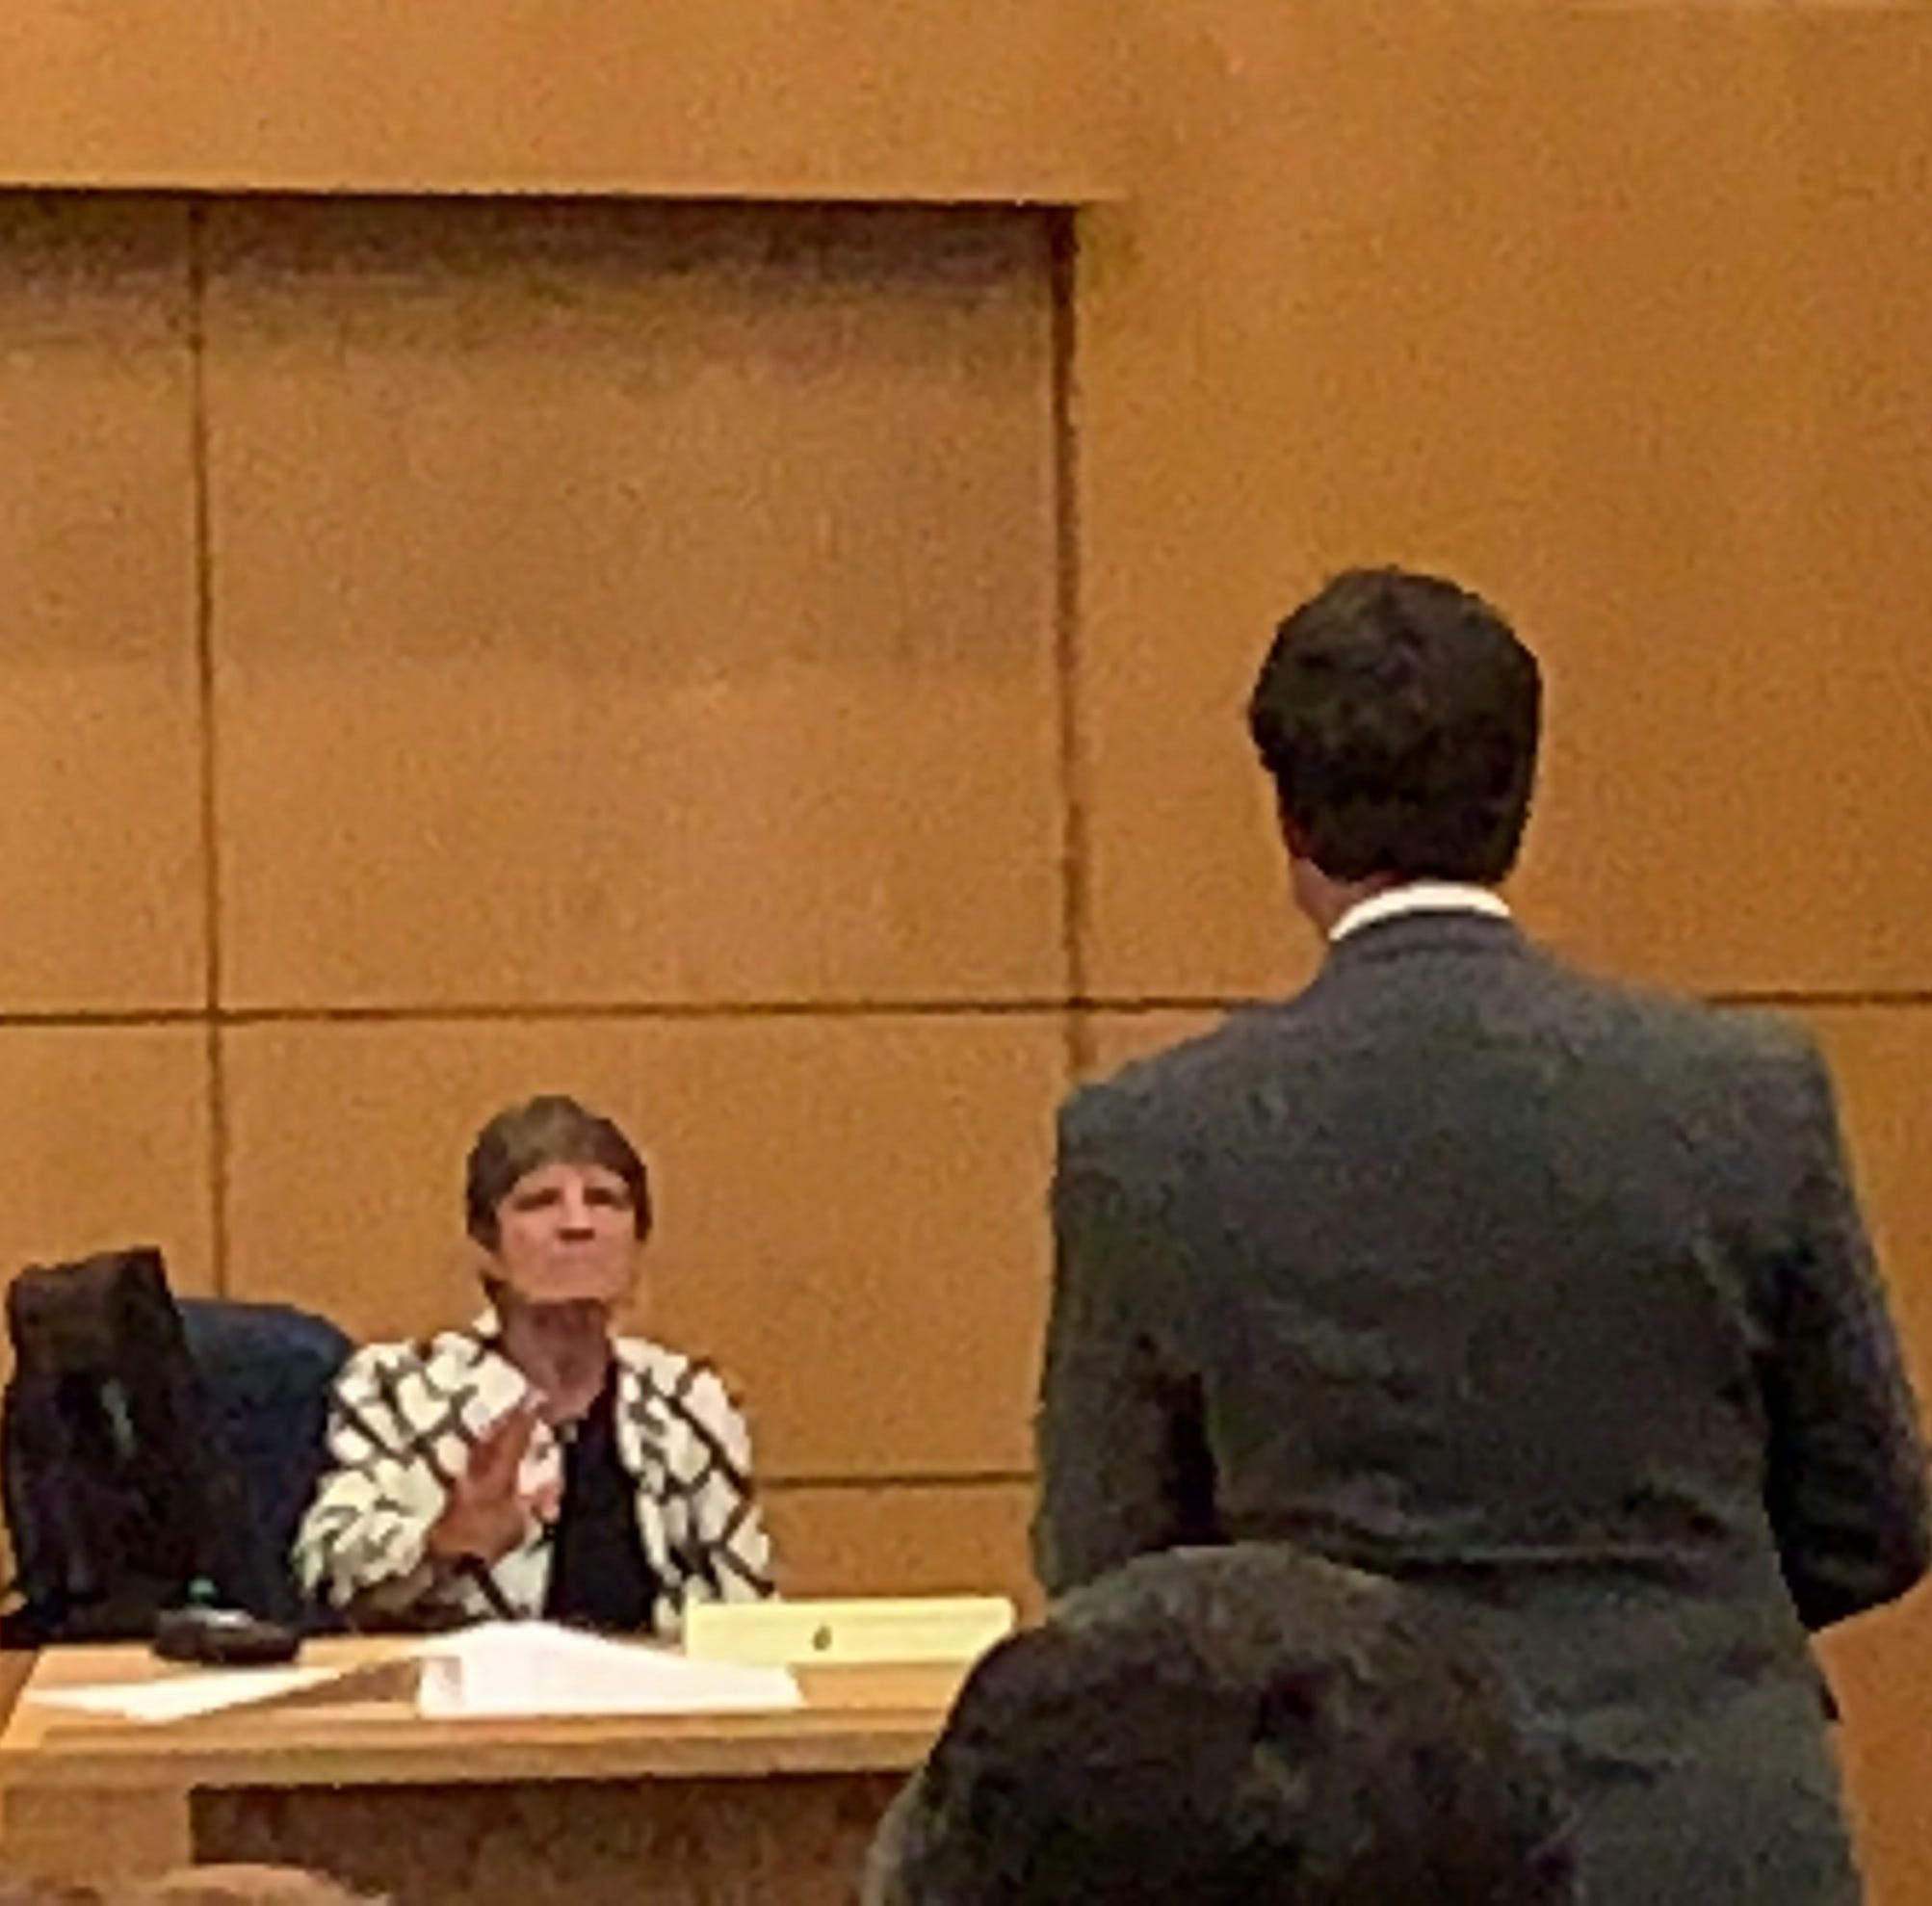 Greenwood murder trial: Defendant's mother gives tearful testimony in son's defense